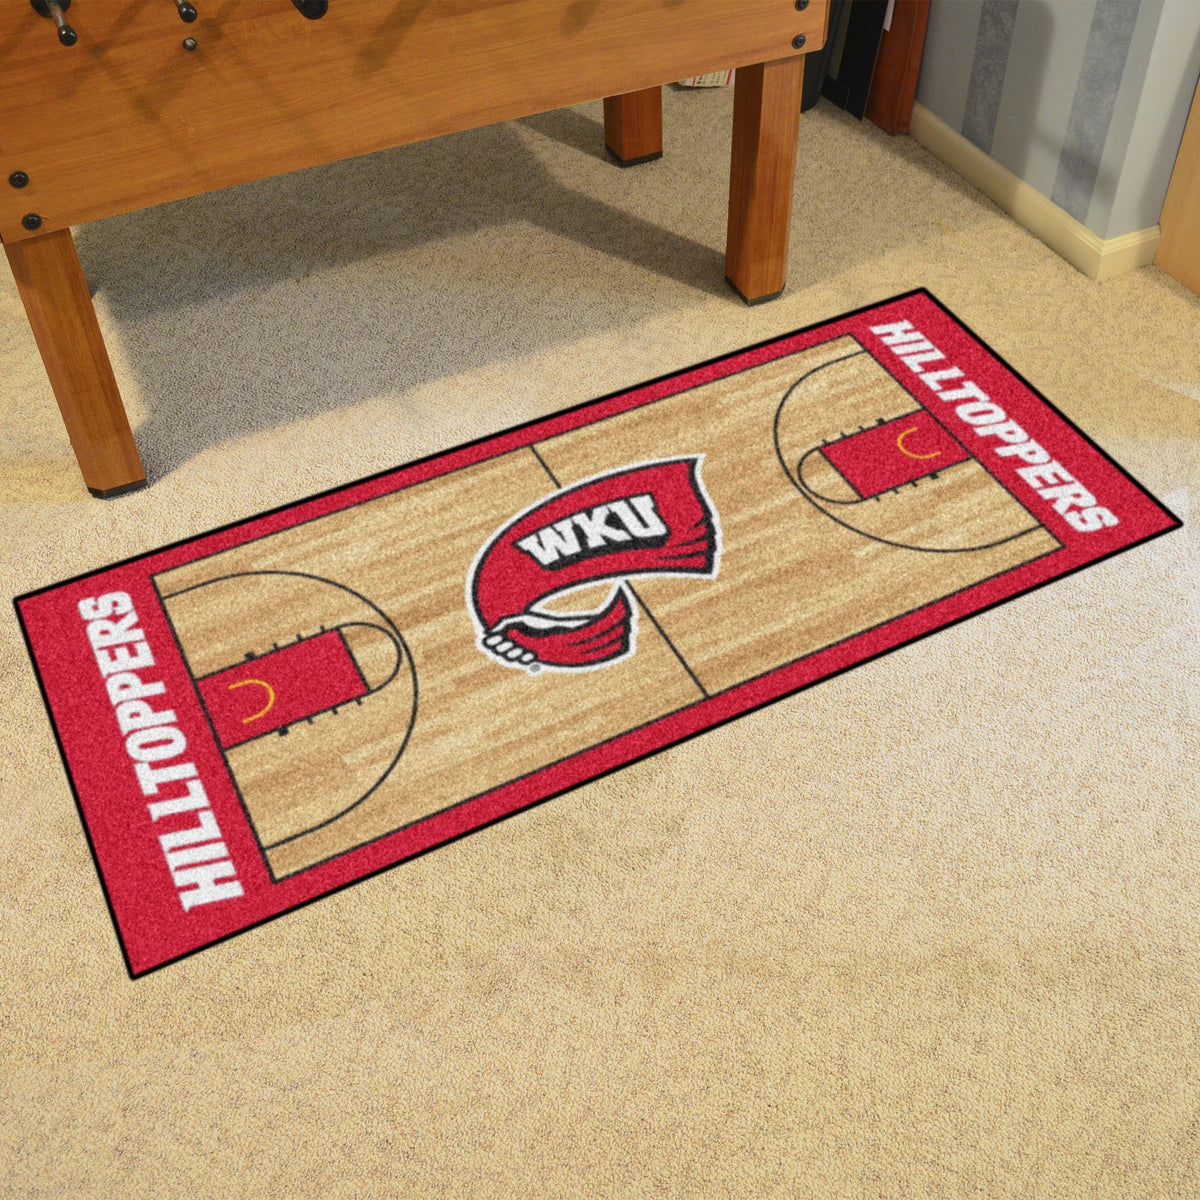 Collegiate - NCAA Basketball Runner Collegiate Mats, Rectangular Mats, NCAA Basketball Runner, Collegiate, Home Fan Mats Western Kentucky